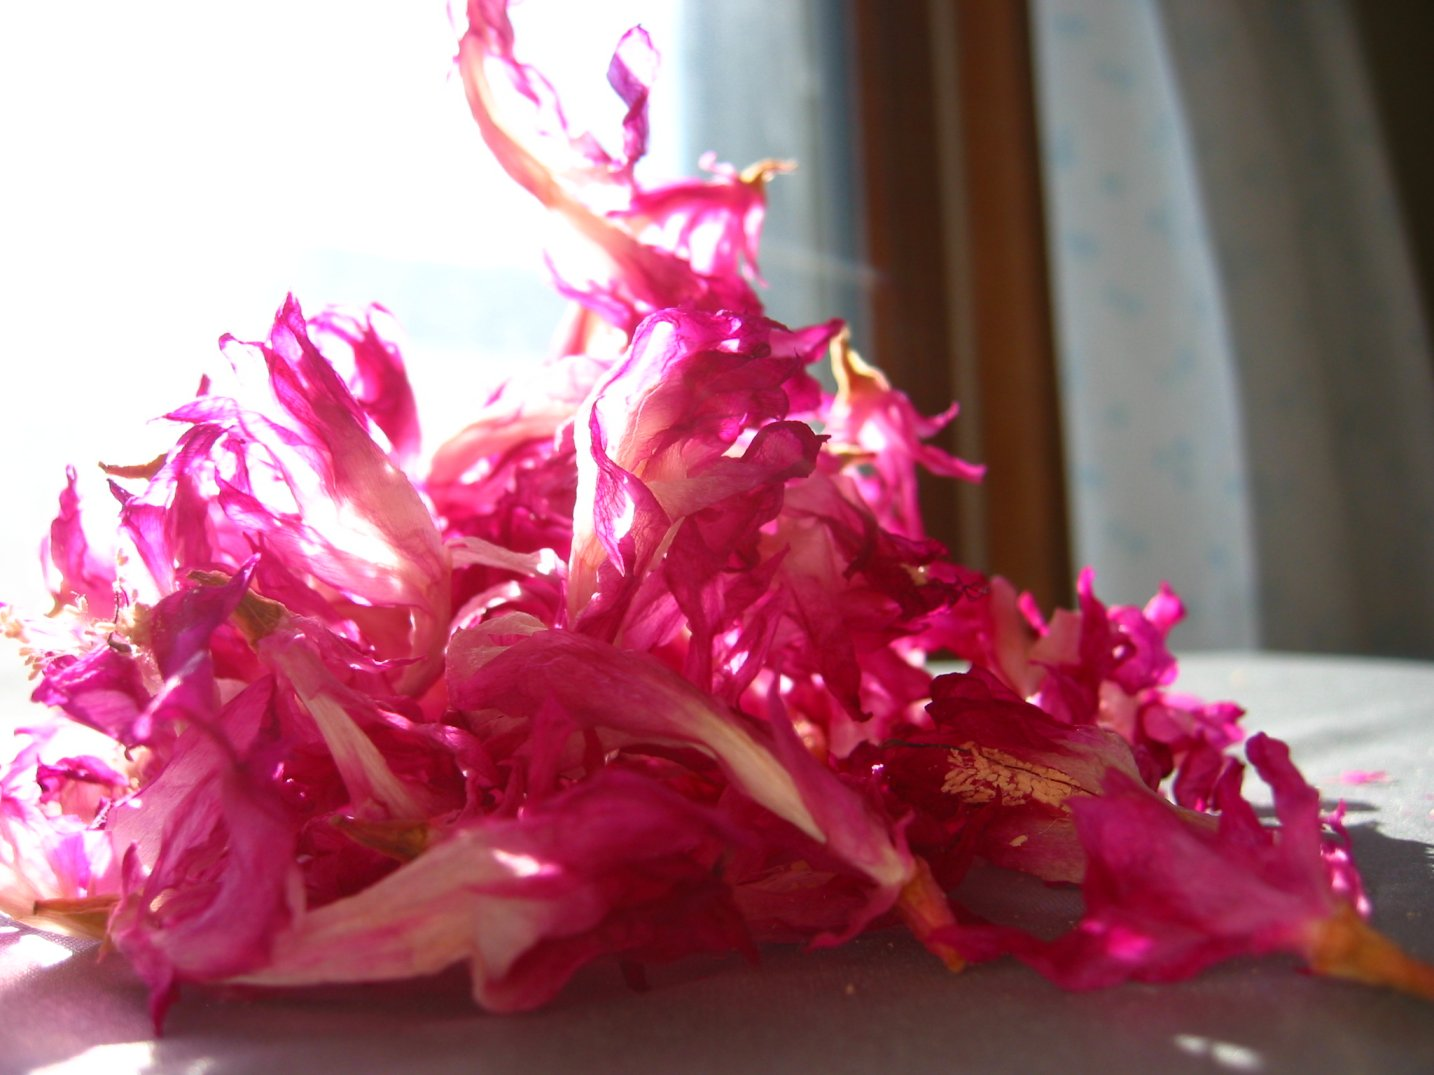 Christmas Cactus Pink Flowers in a pile looking like a fire - soul-amp.com